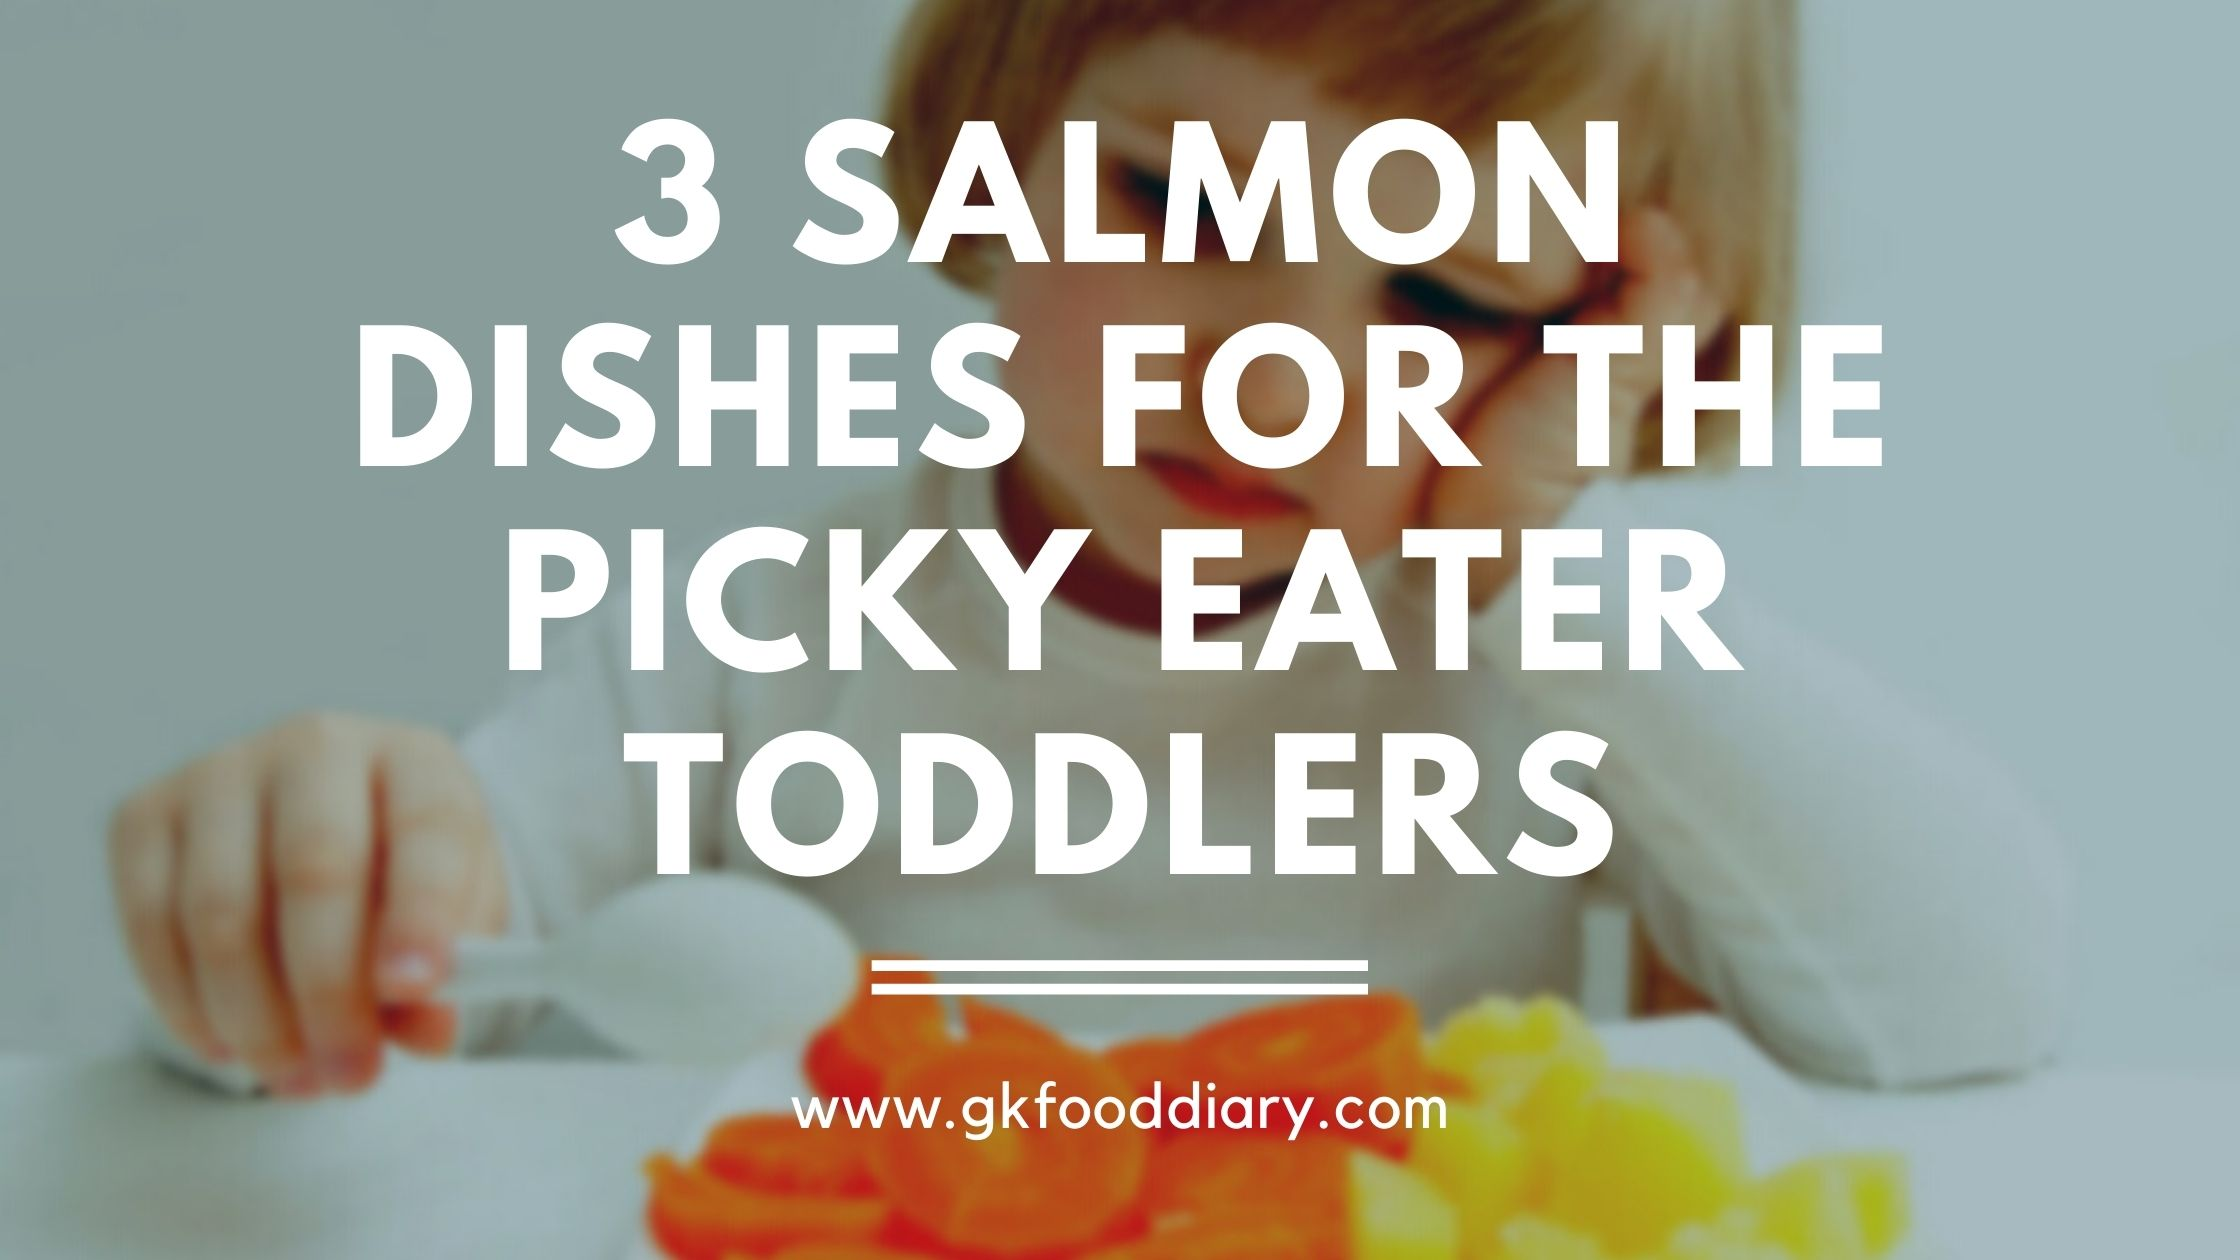 3 Salmon Dishes for the Picky Eater Toddlers